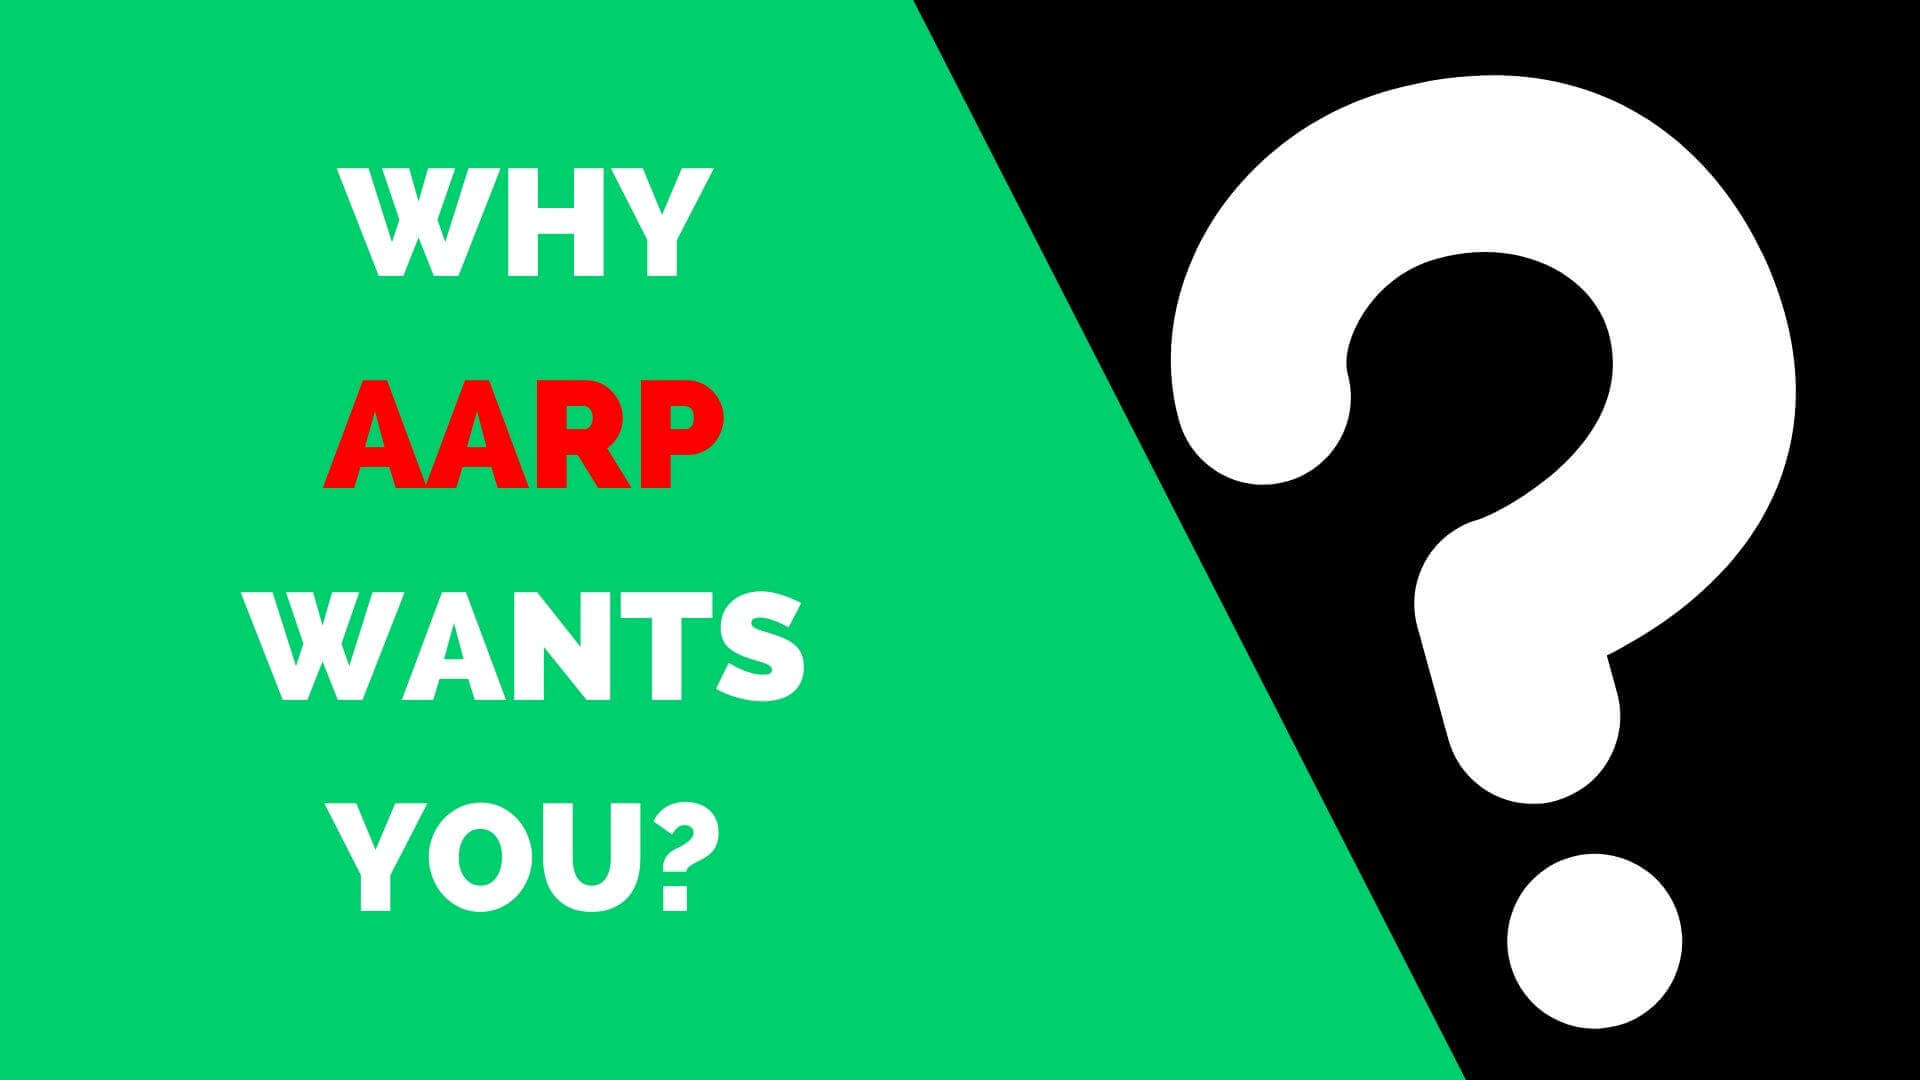 Aarp Health Insurance >> Aarp Health Insurance Why Aarp Wants You